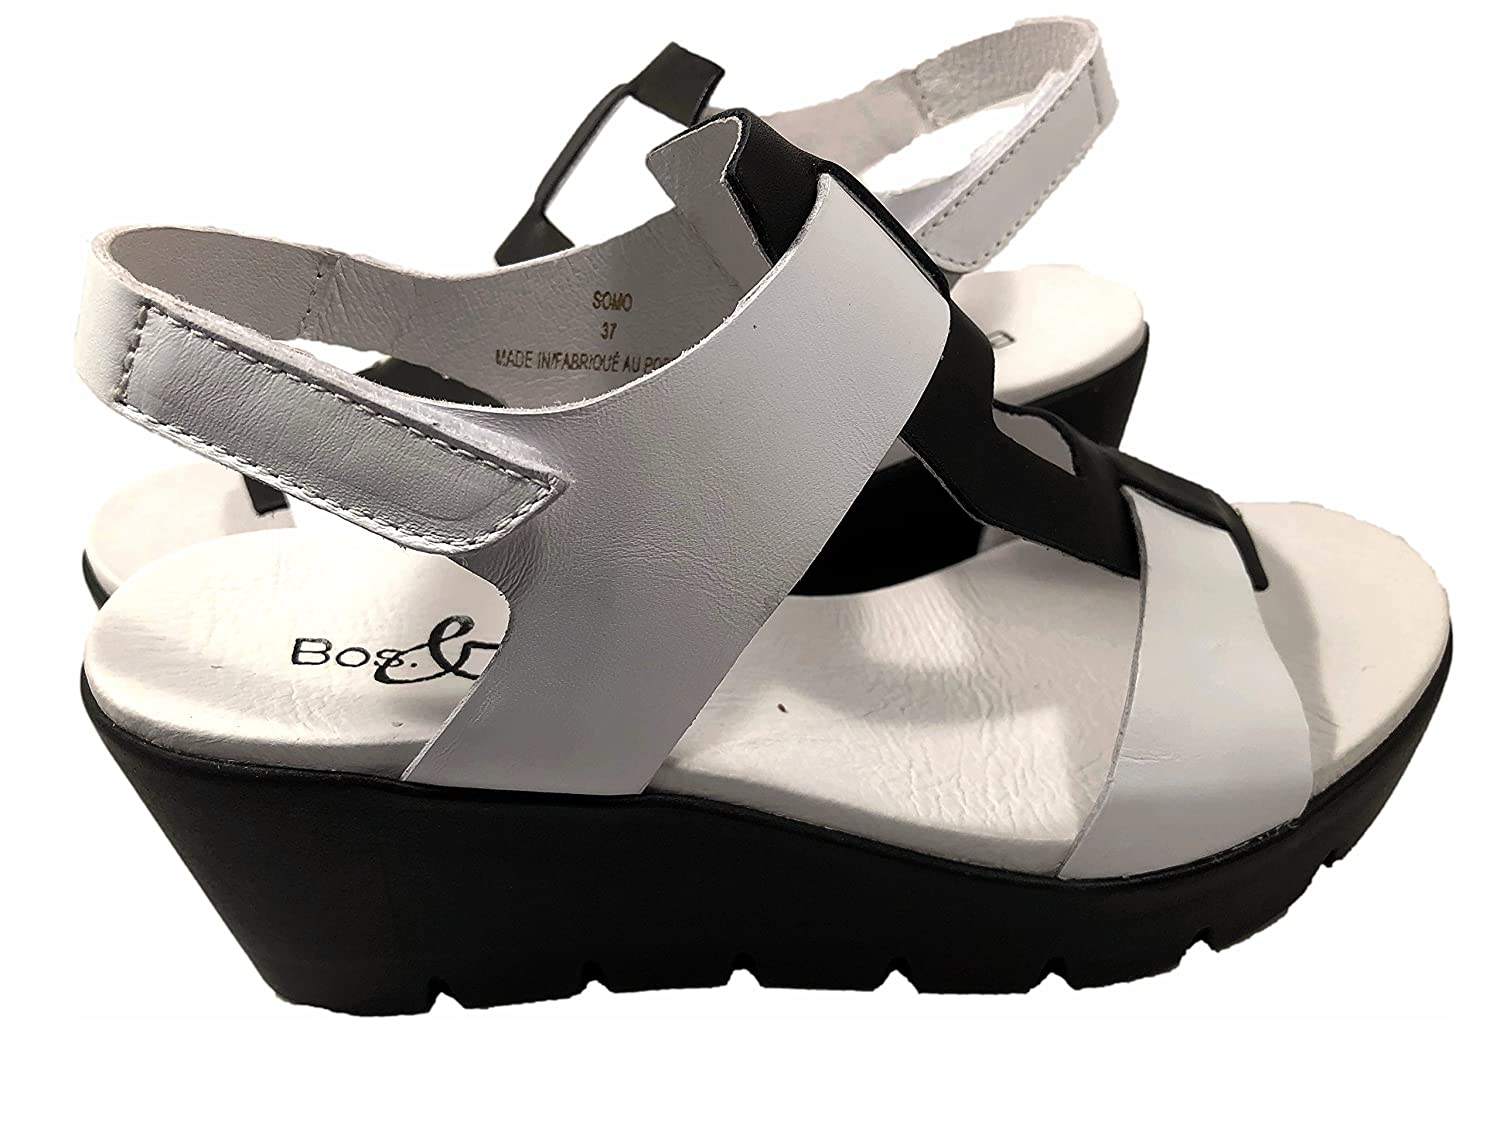 Bos. & Co. Women's Somo Wedge Sandal B075GPS77B 37 M EU (6-6.5 US)|White/Black Smooth Leather